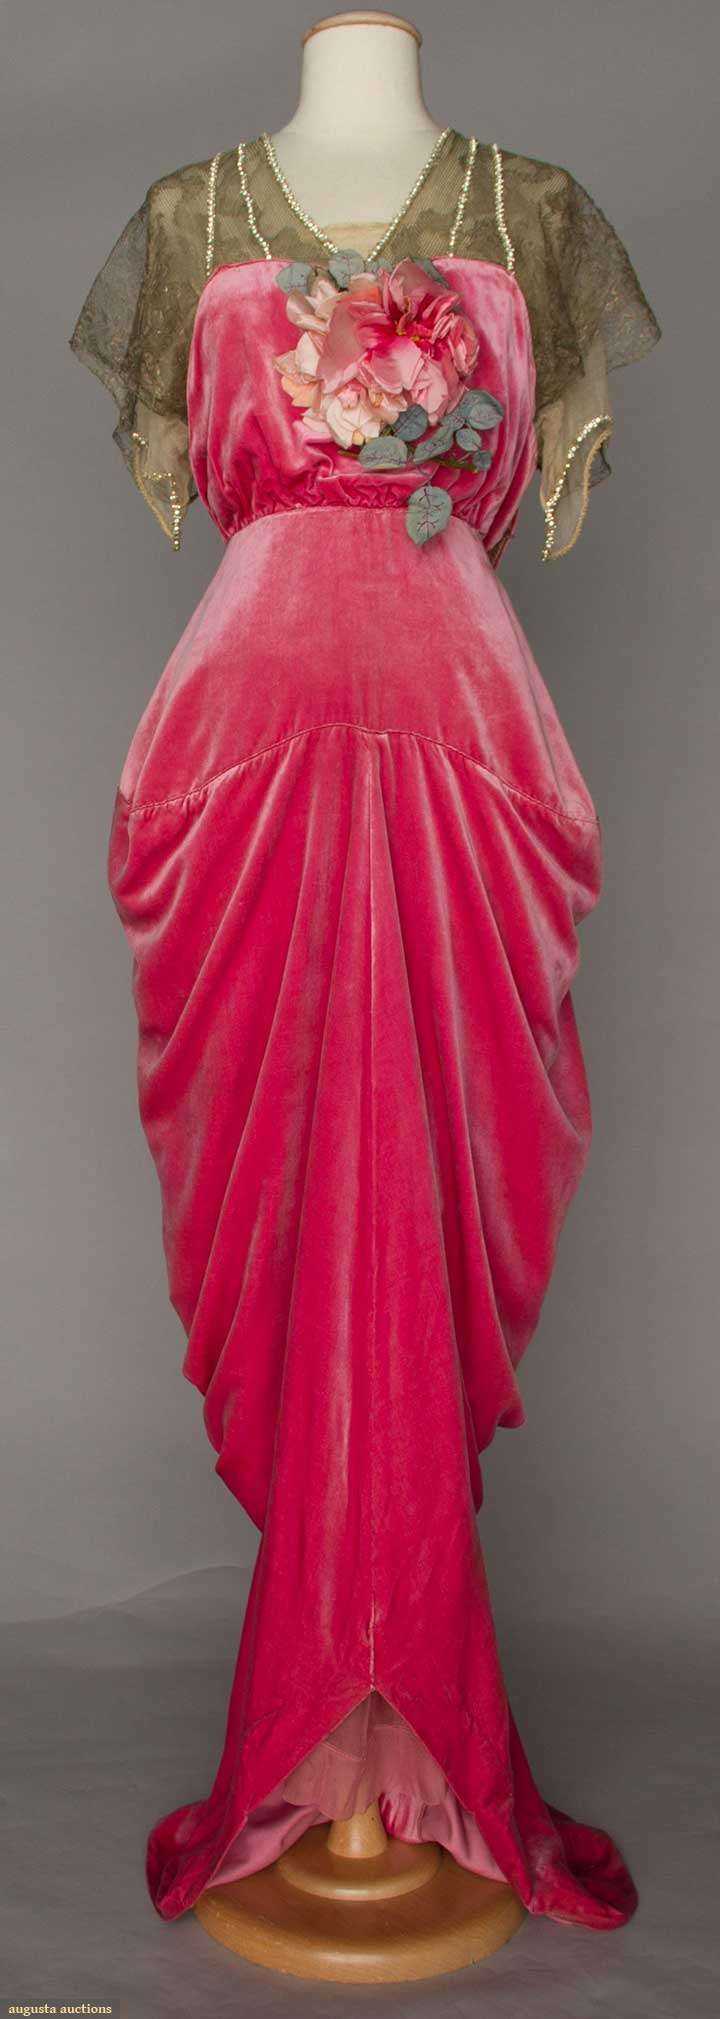 "RASPBERRY VELVET HOBBLE SKIRT GOWN, PARIS, 1910-1914 Silk velvet, upper bodice of gold lace over chiffon trimmed w/ rhinestone bands, silk blossom corsage, trained skirt narrows to ankles, label ""Robert, Paris"","